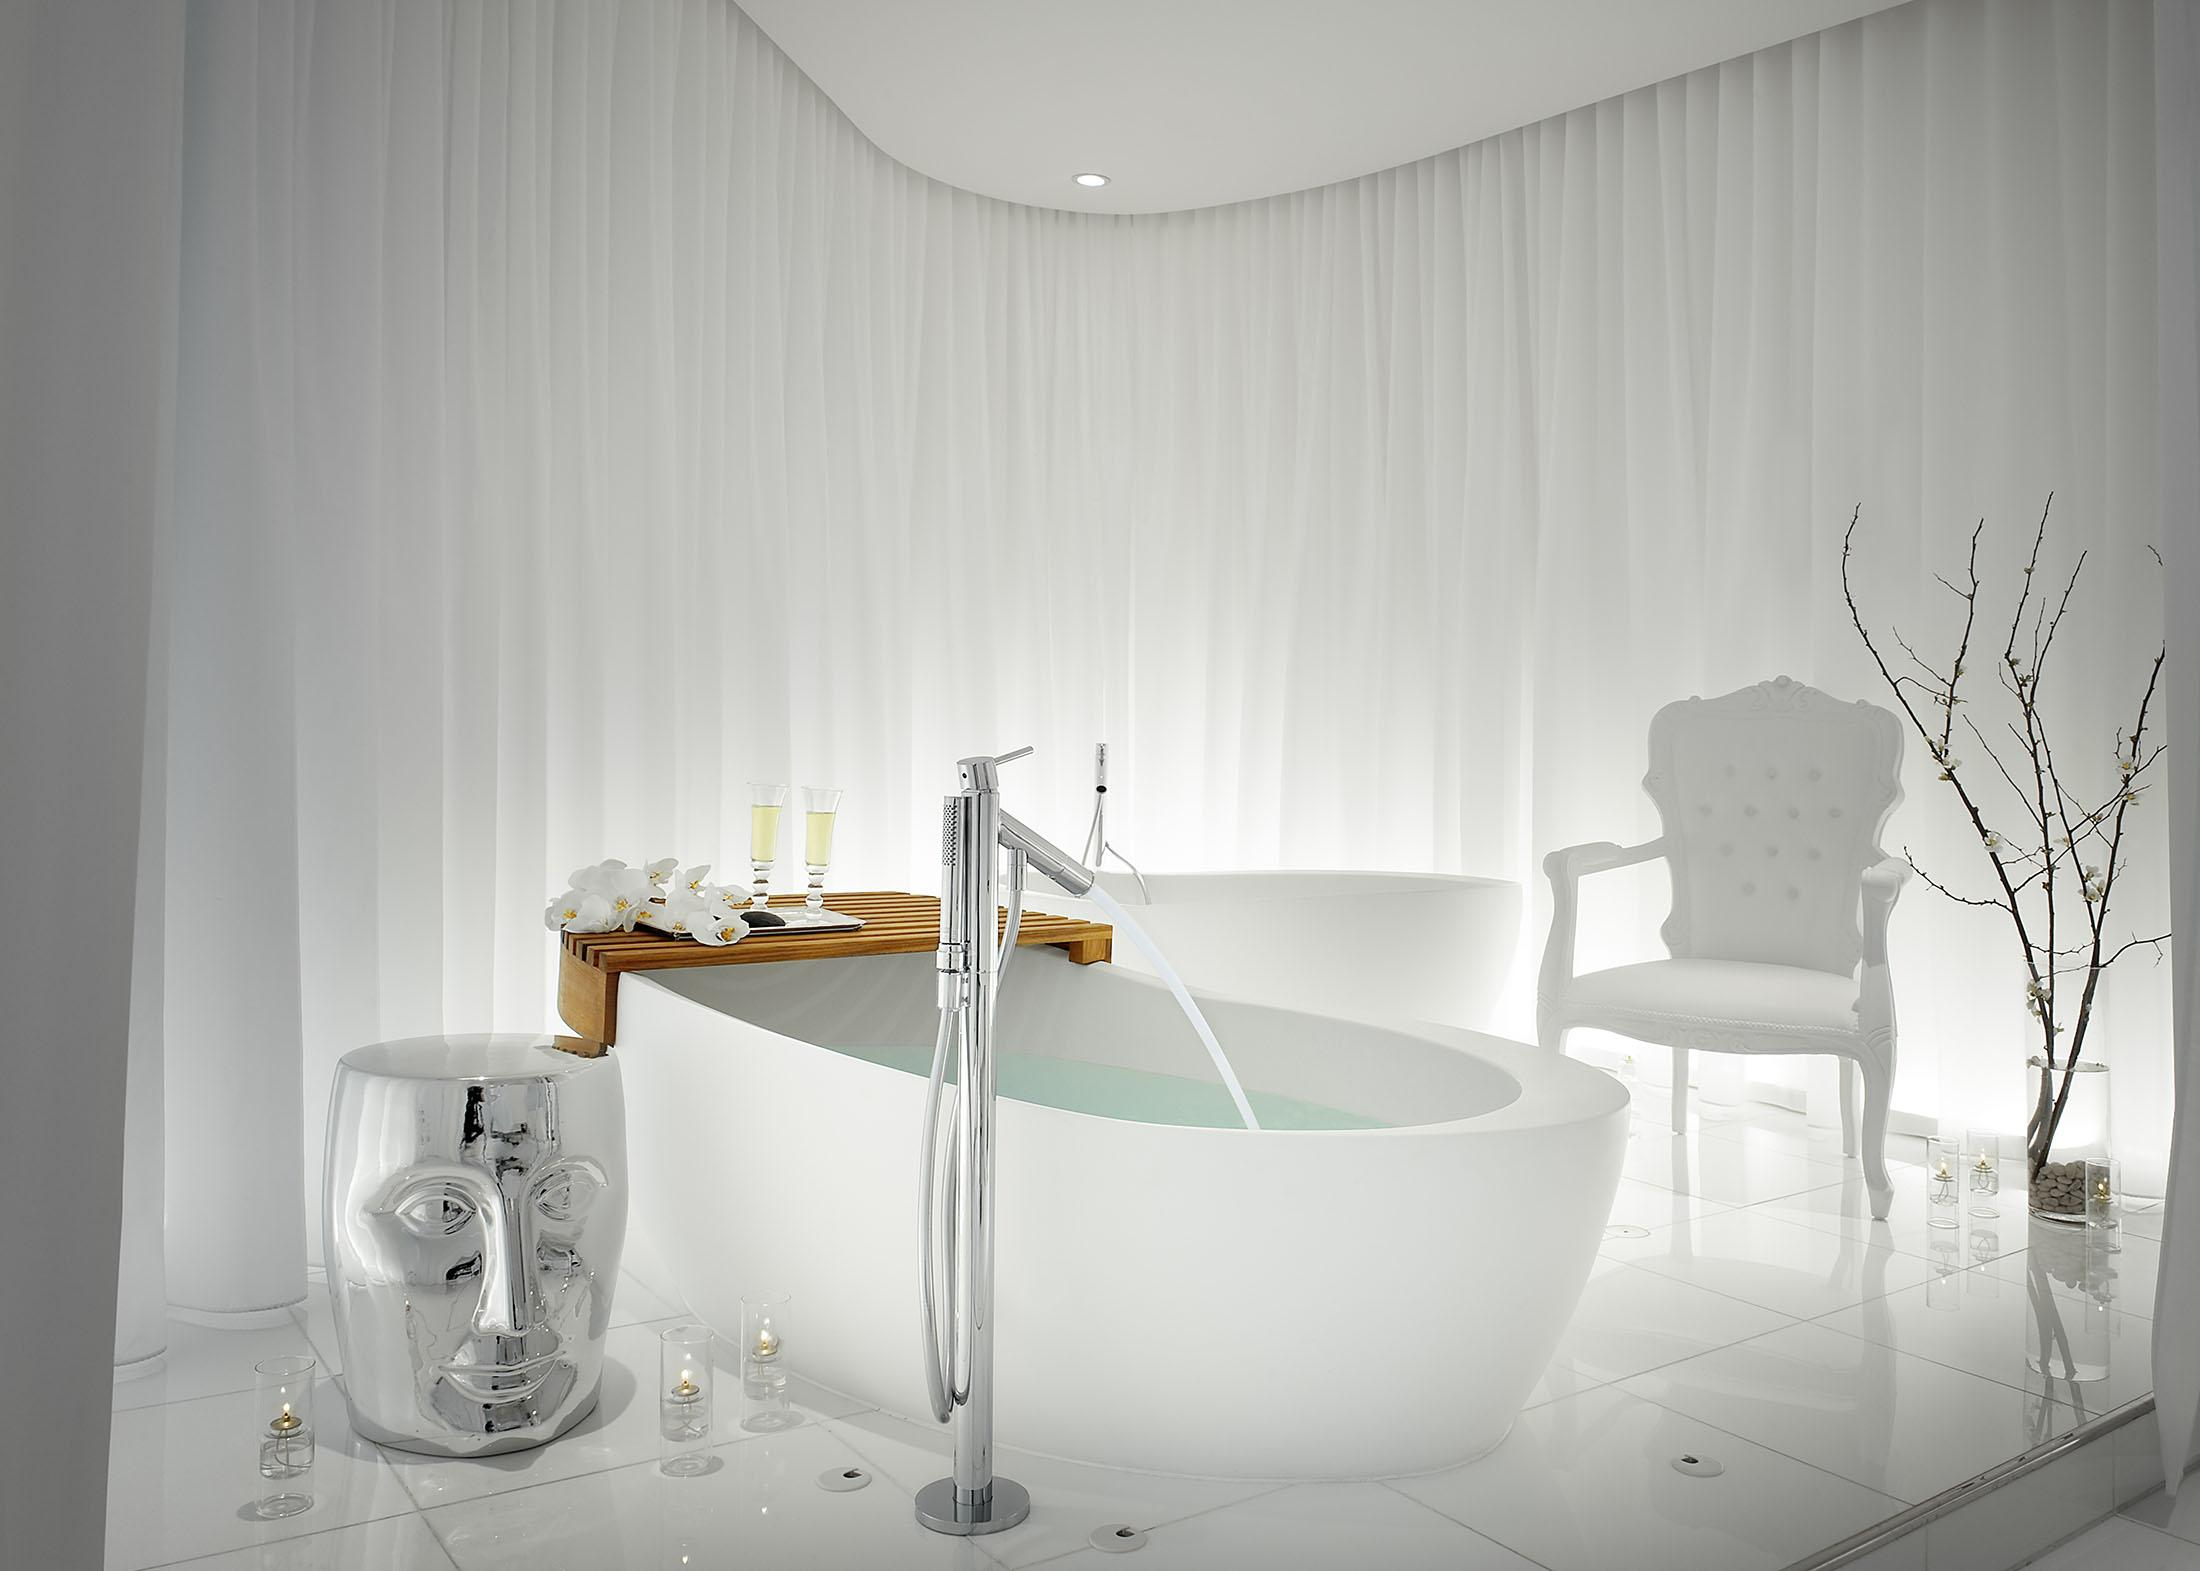 A tub being filled in a serene white spa